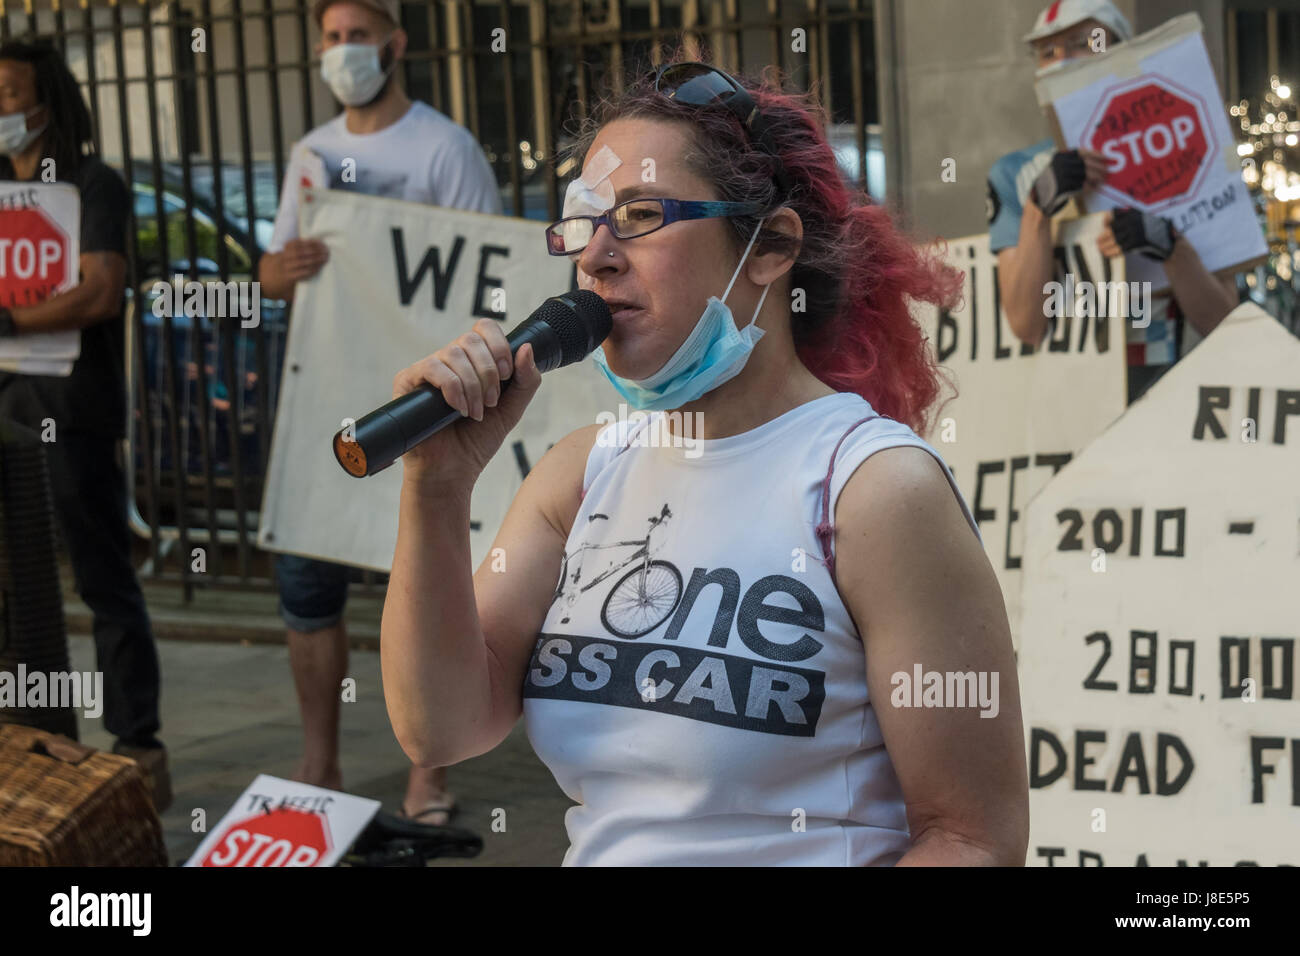 May 26, 2017 - London, UK - London UK. 26th May 2017. Nicola Branch calls for a slience to remember the cyclist - Stock Image